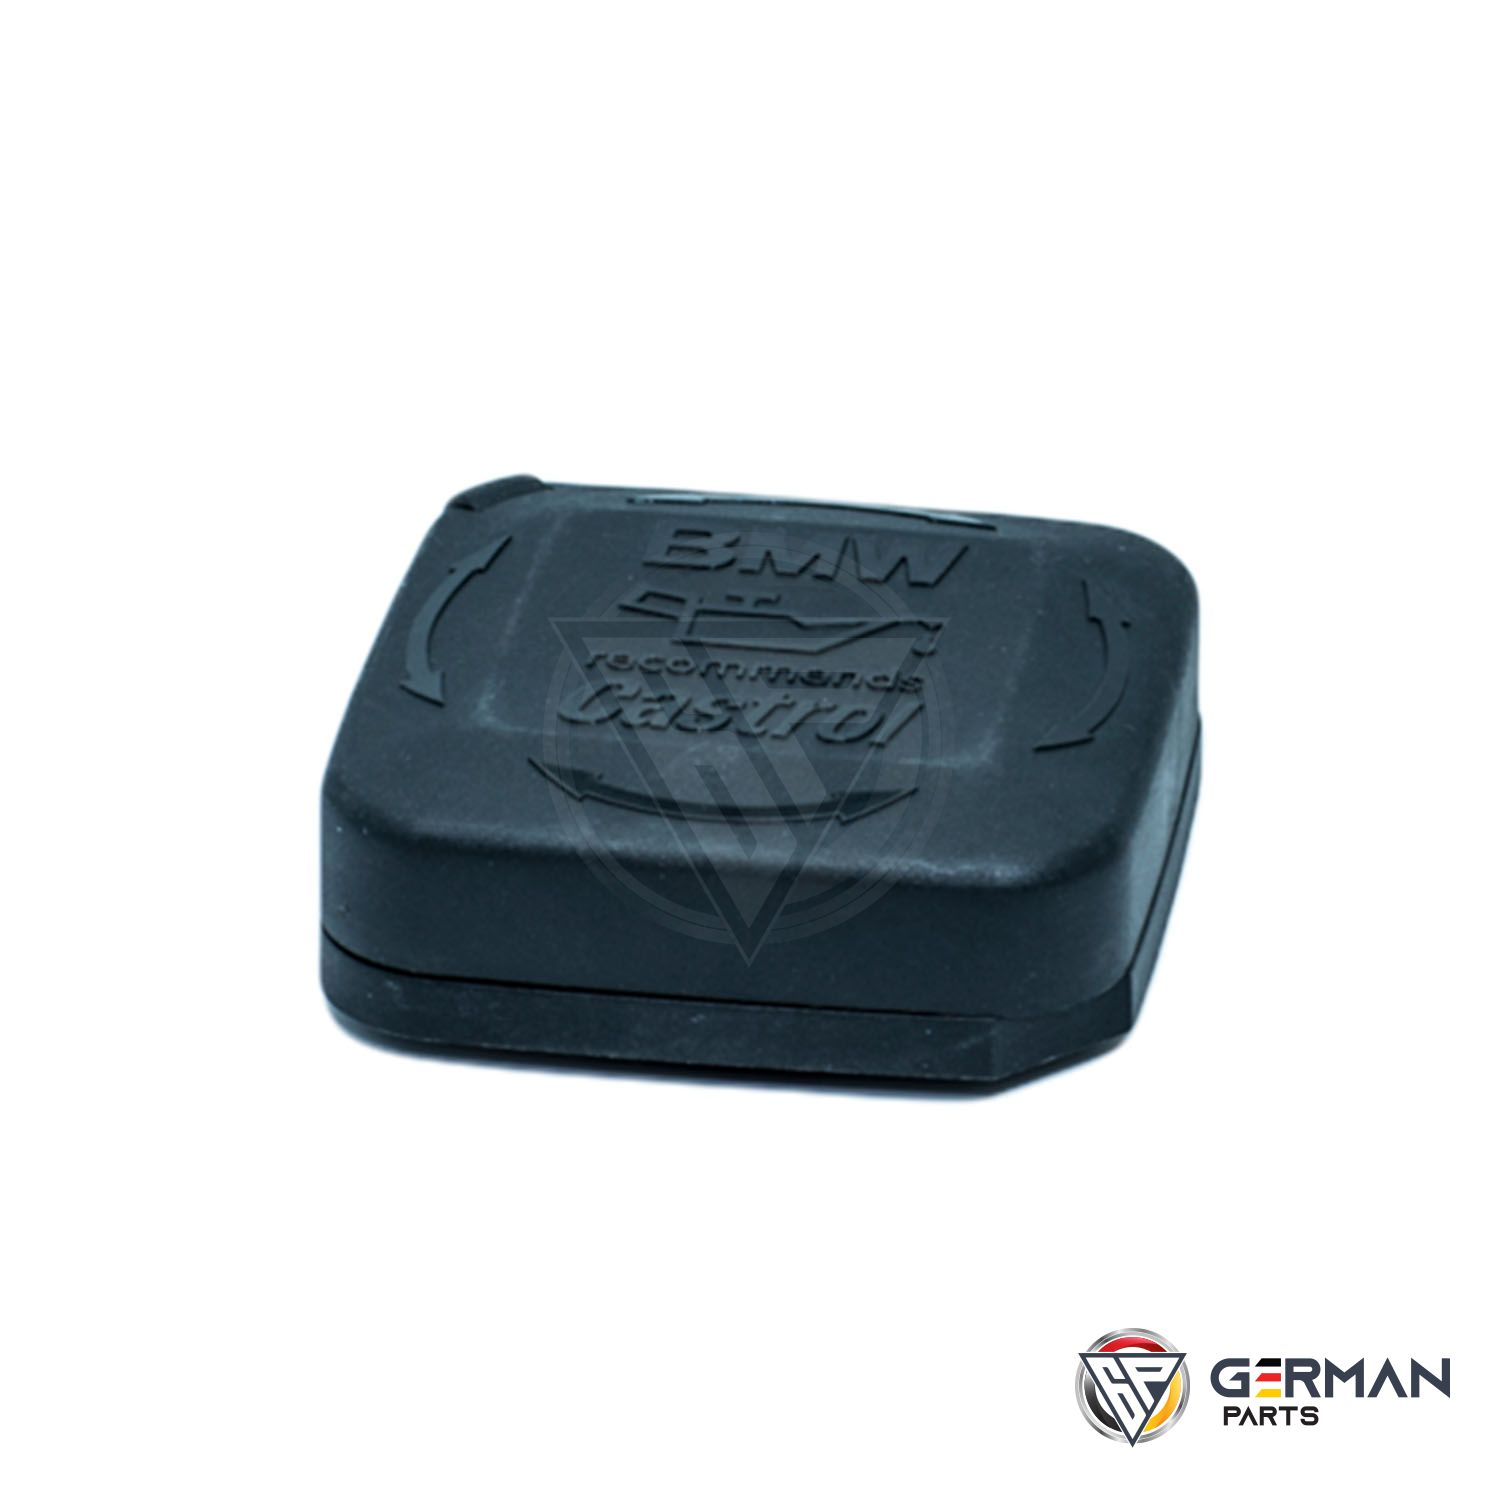 Buy BMW Oil Cap 11127500568 - German Parts